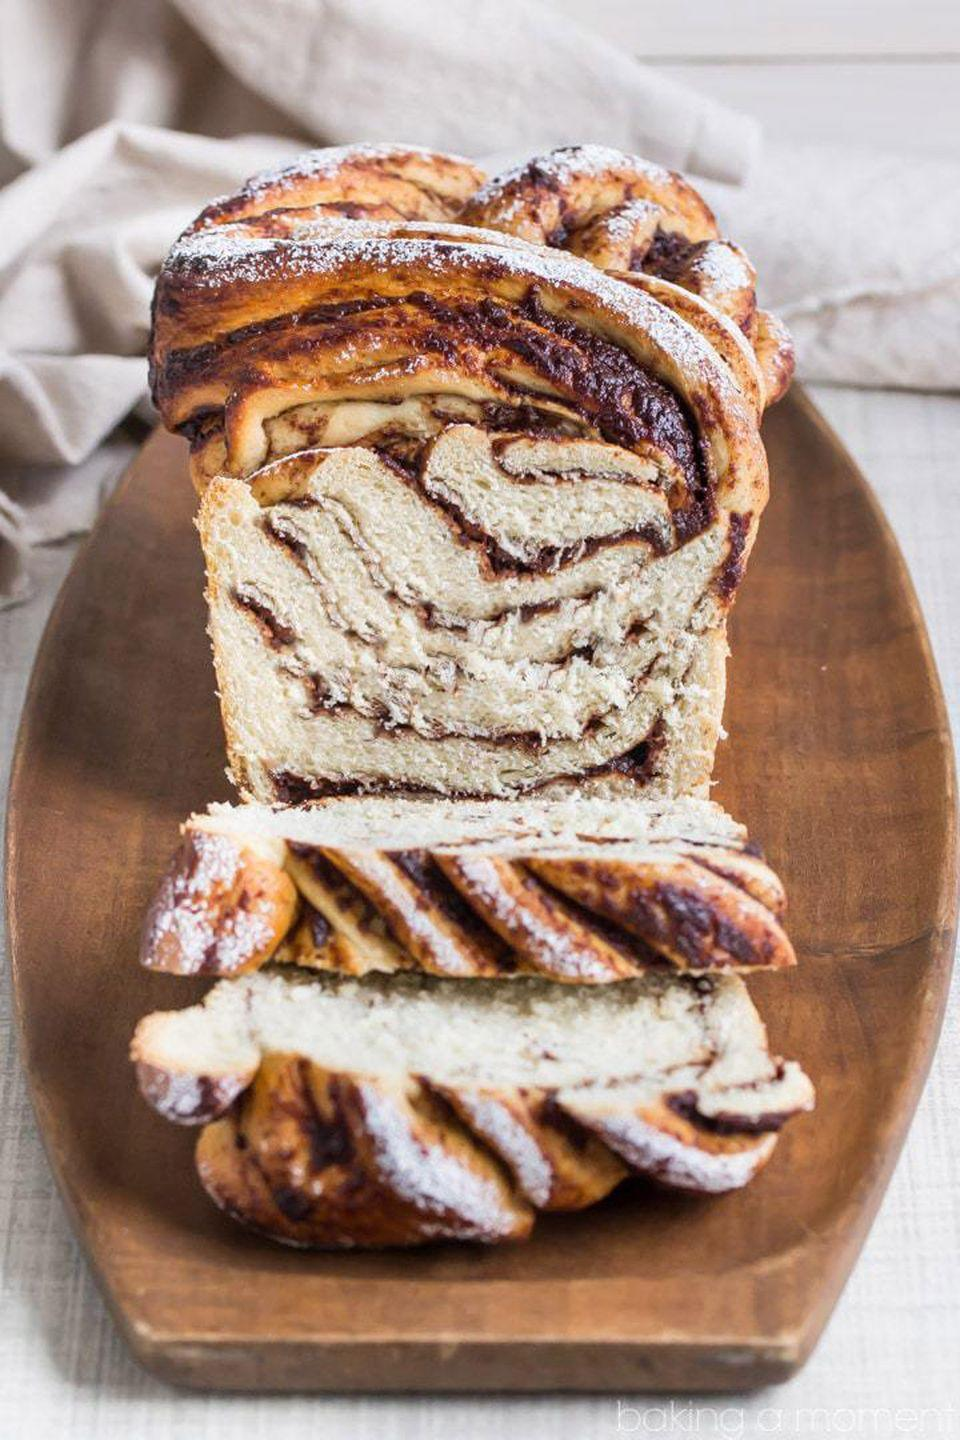 "<p>Serve this bread at breakfast with coffee or as an afternoon snack with hot chai tea.</p><p><strong>Get the recipe at <a href=""https://bakingamoment.com/apple-butter-cinnamon-swirl-bread/"" rel=""nofollow noopener"" target=""_blank"" data-ylk=""slk:Baking a Moment"" class=""link rapid-noclick-resp"">Baking a Moment</a>.</strong></p><p><a class=""link rapid-noclick-resp"" href=""https://www.amazon.com/dp/B0002L0ZMK?tag=syn-yahoo-20&ascsubtag=%5Bartid%7C10050.g.650%5Bsrc%7Cyahoo-us"" rel=""nofollow noopener"" target=""_blank"" data-ylk=""slk:SHOP BREAD PANS"">SHOP BREAD PANS</a><br></p>"